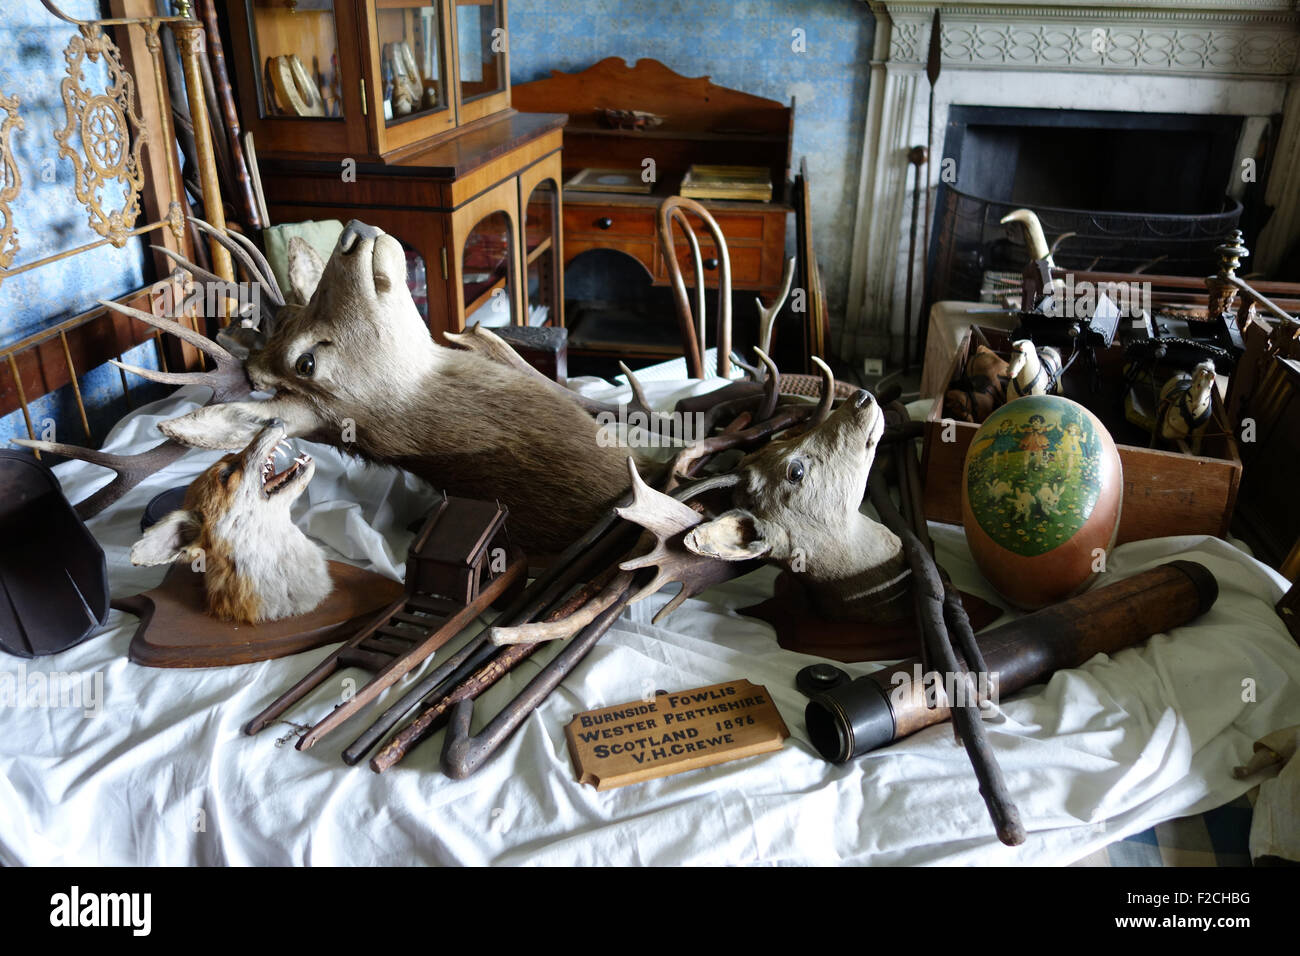 Junk room old odd objects stuffed animals animal heads stag deer collection at Calke Abbey - Stock Image